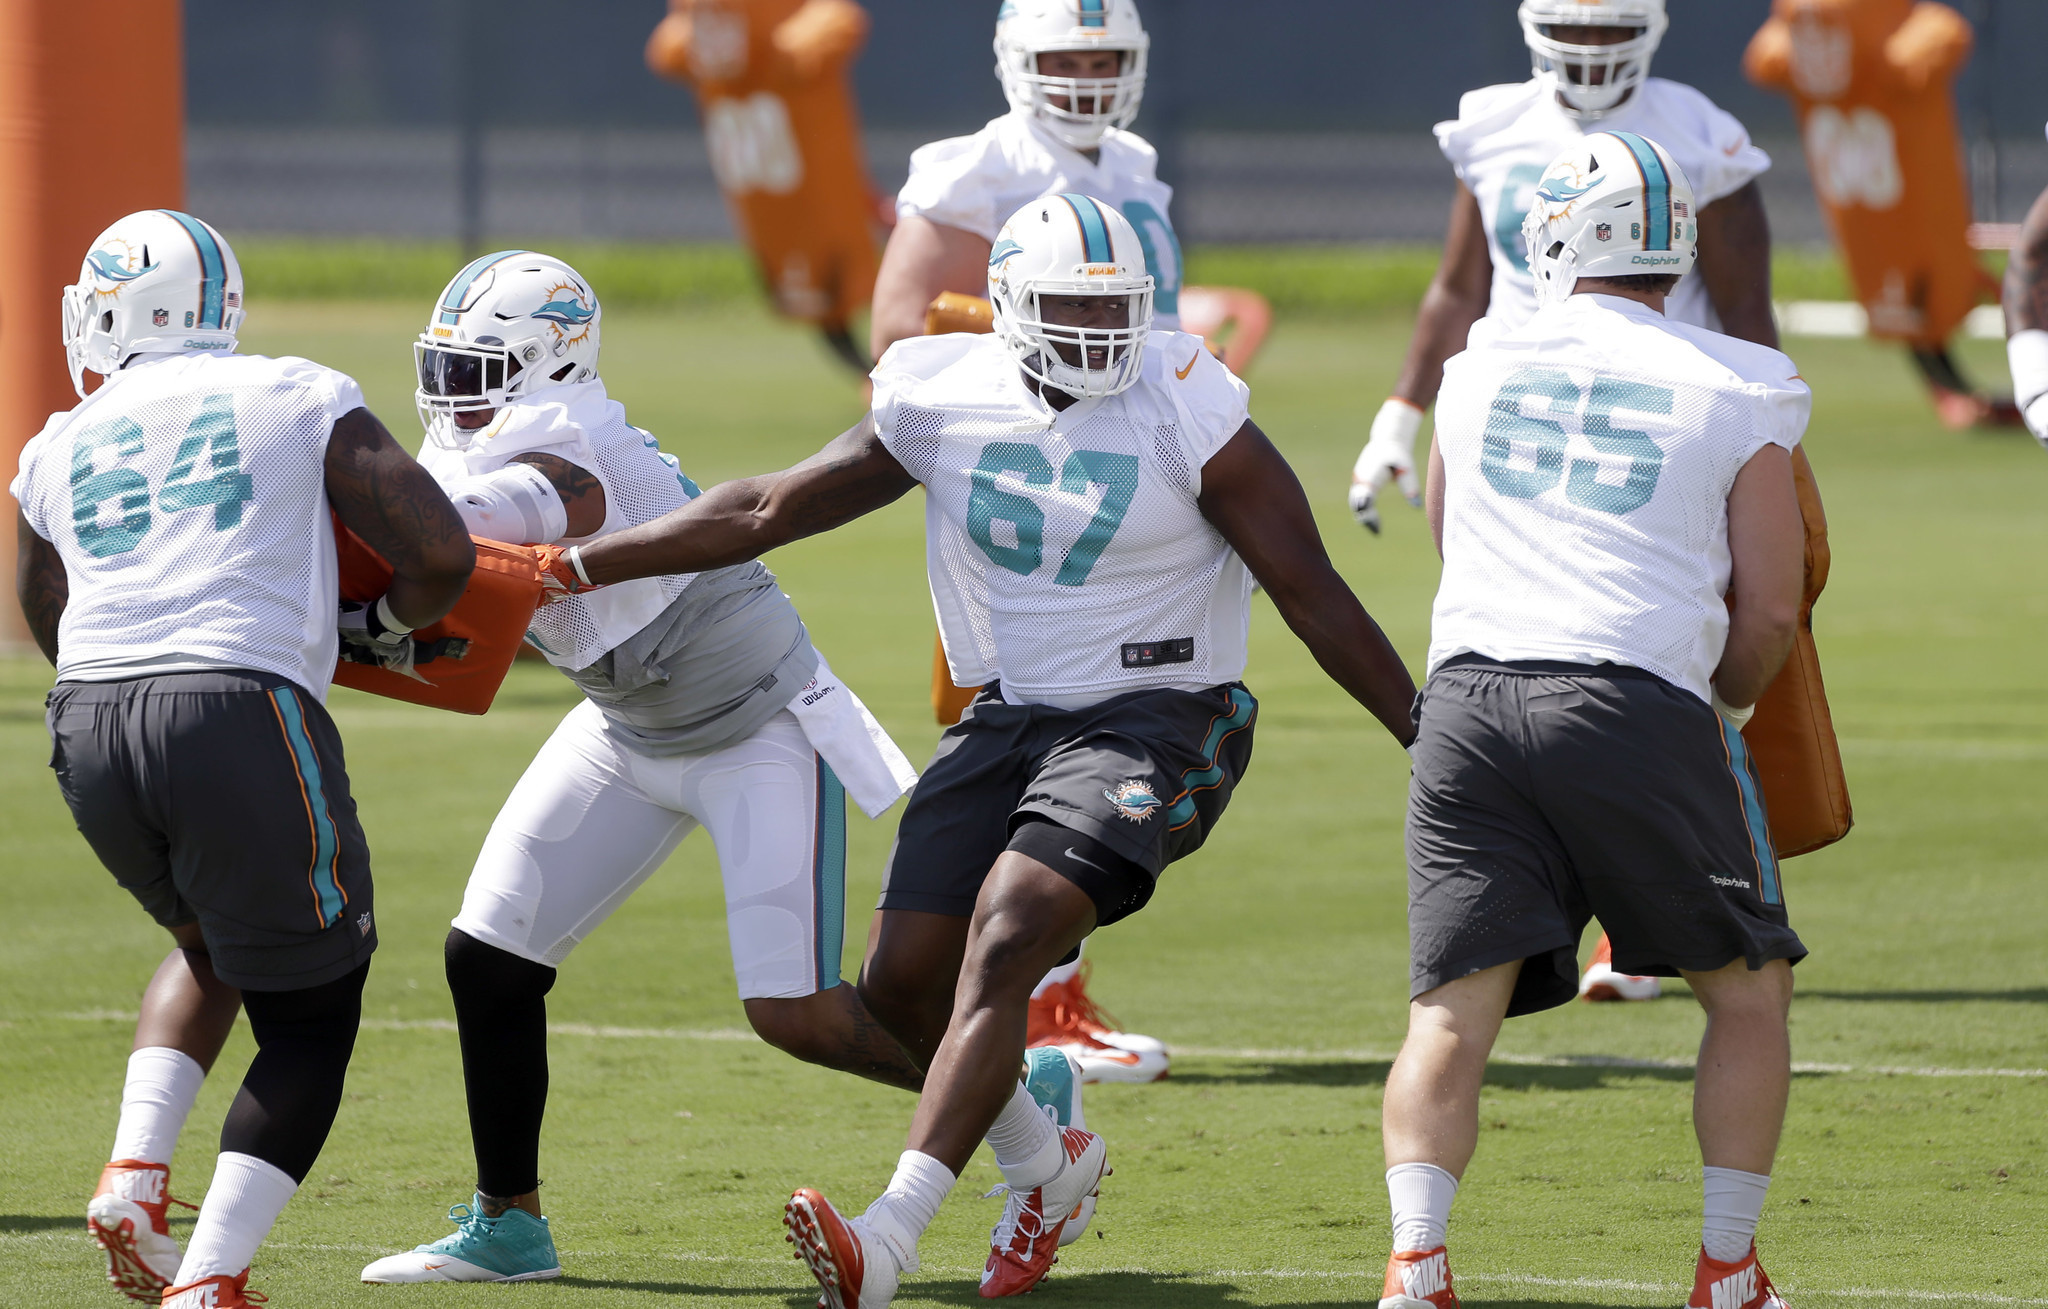 Sfl-10-things-we-learned-from-week-1-of-dolphins-ota-practices-20160527